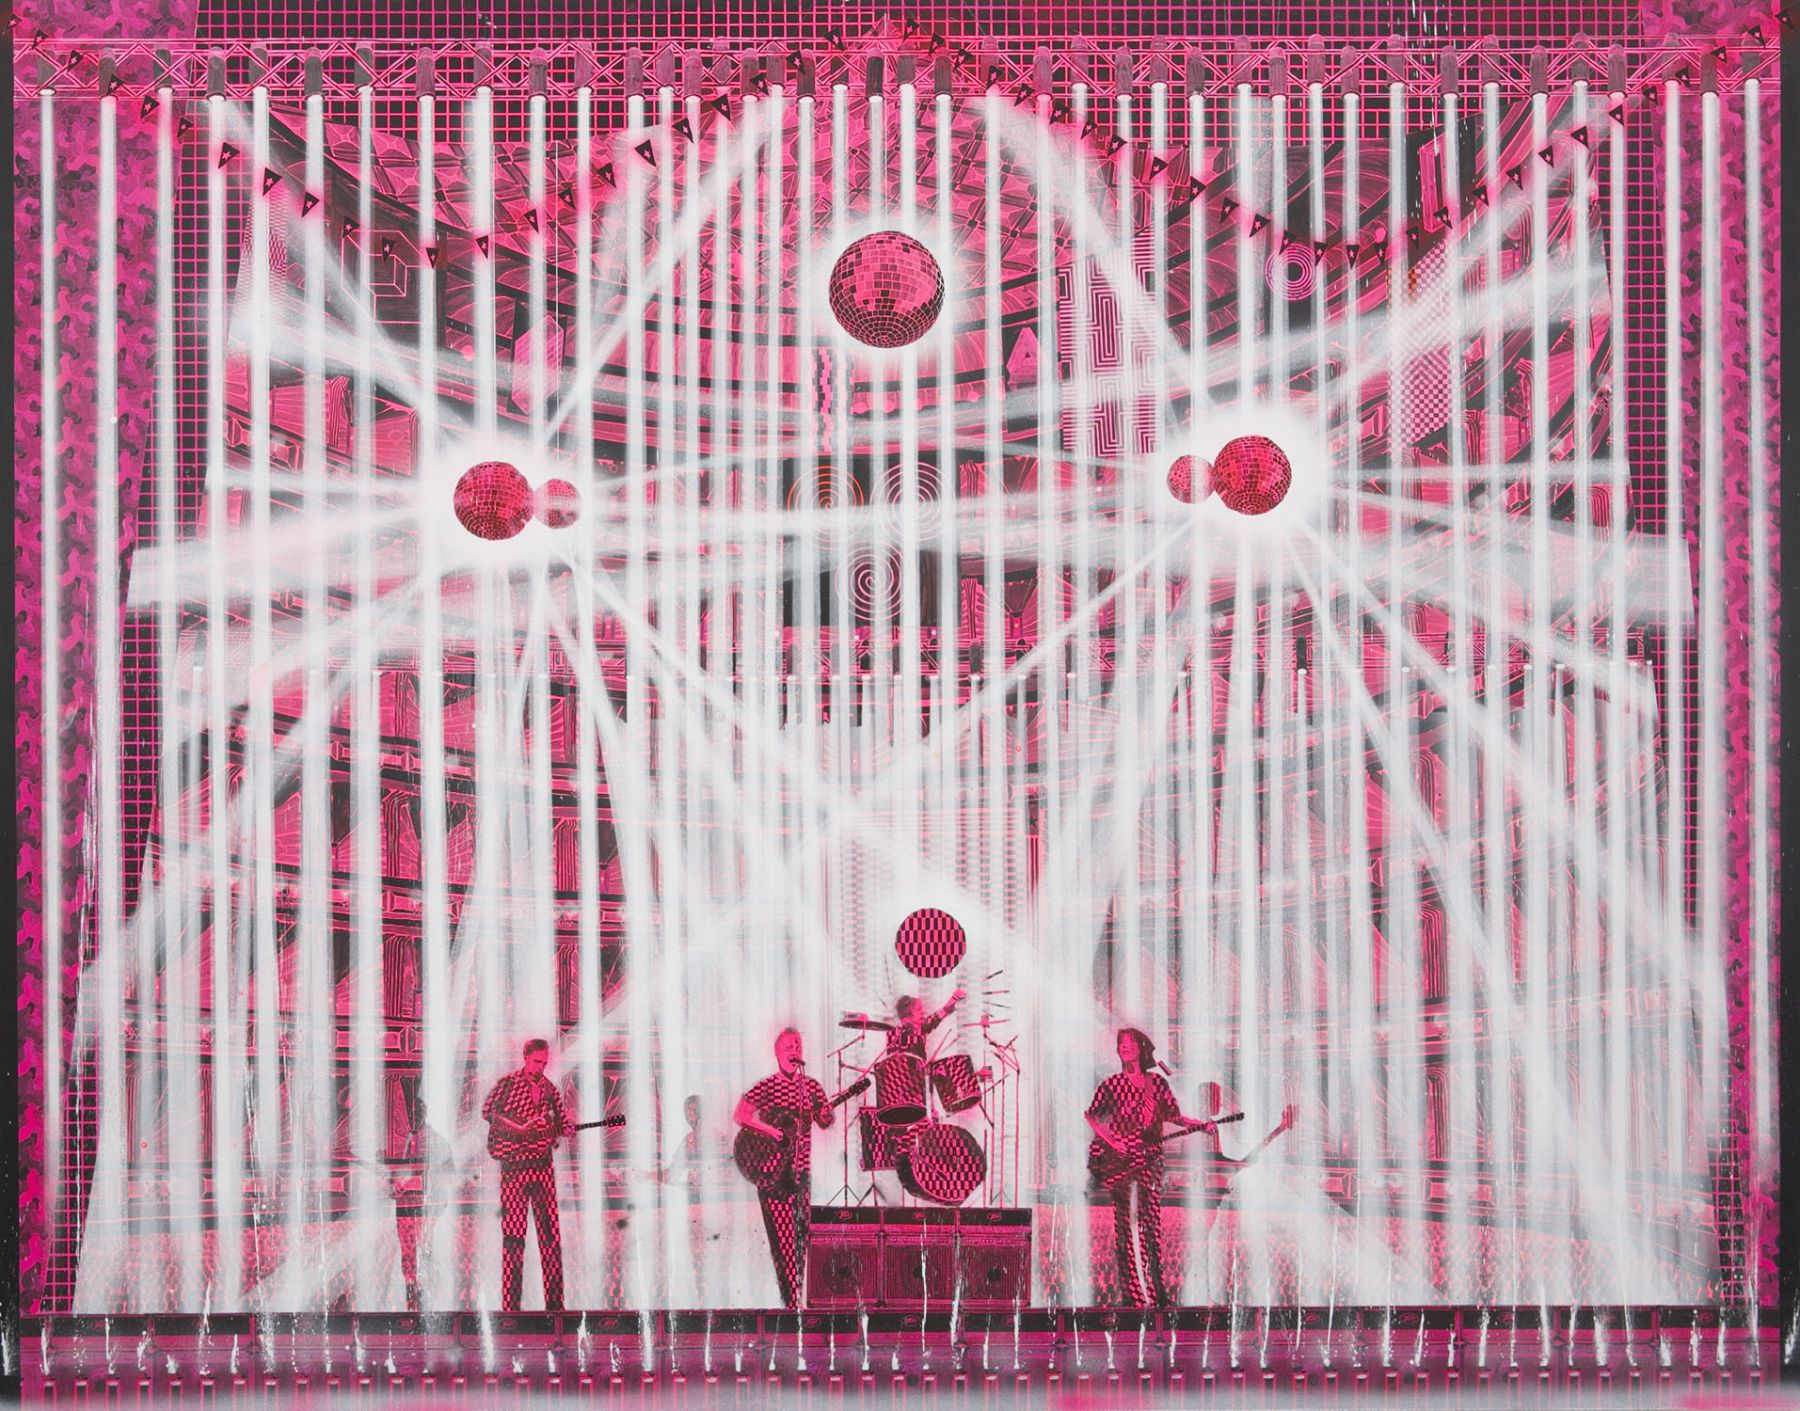 pink and white concert scene with disco balls, drum set, and musicians